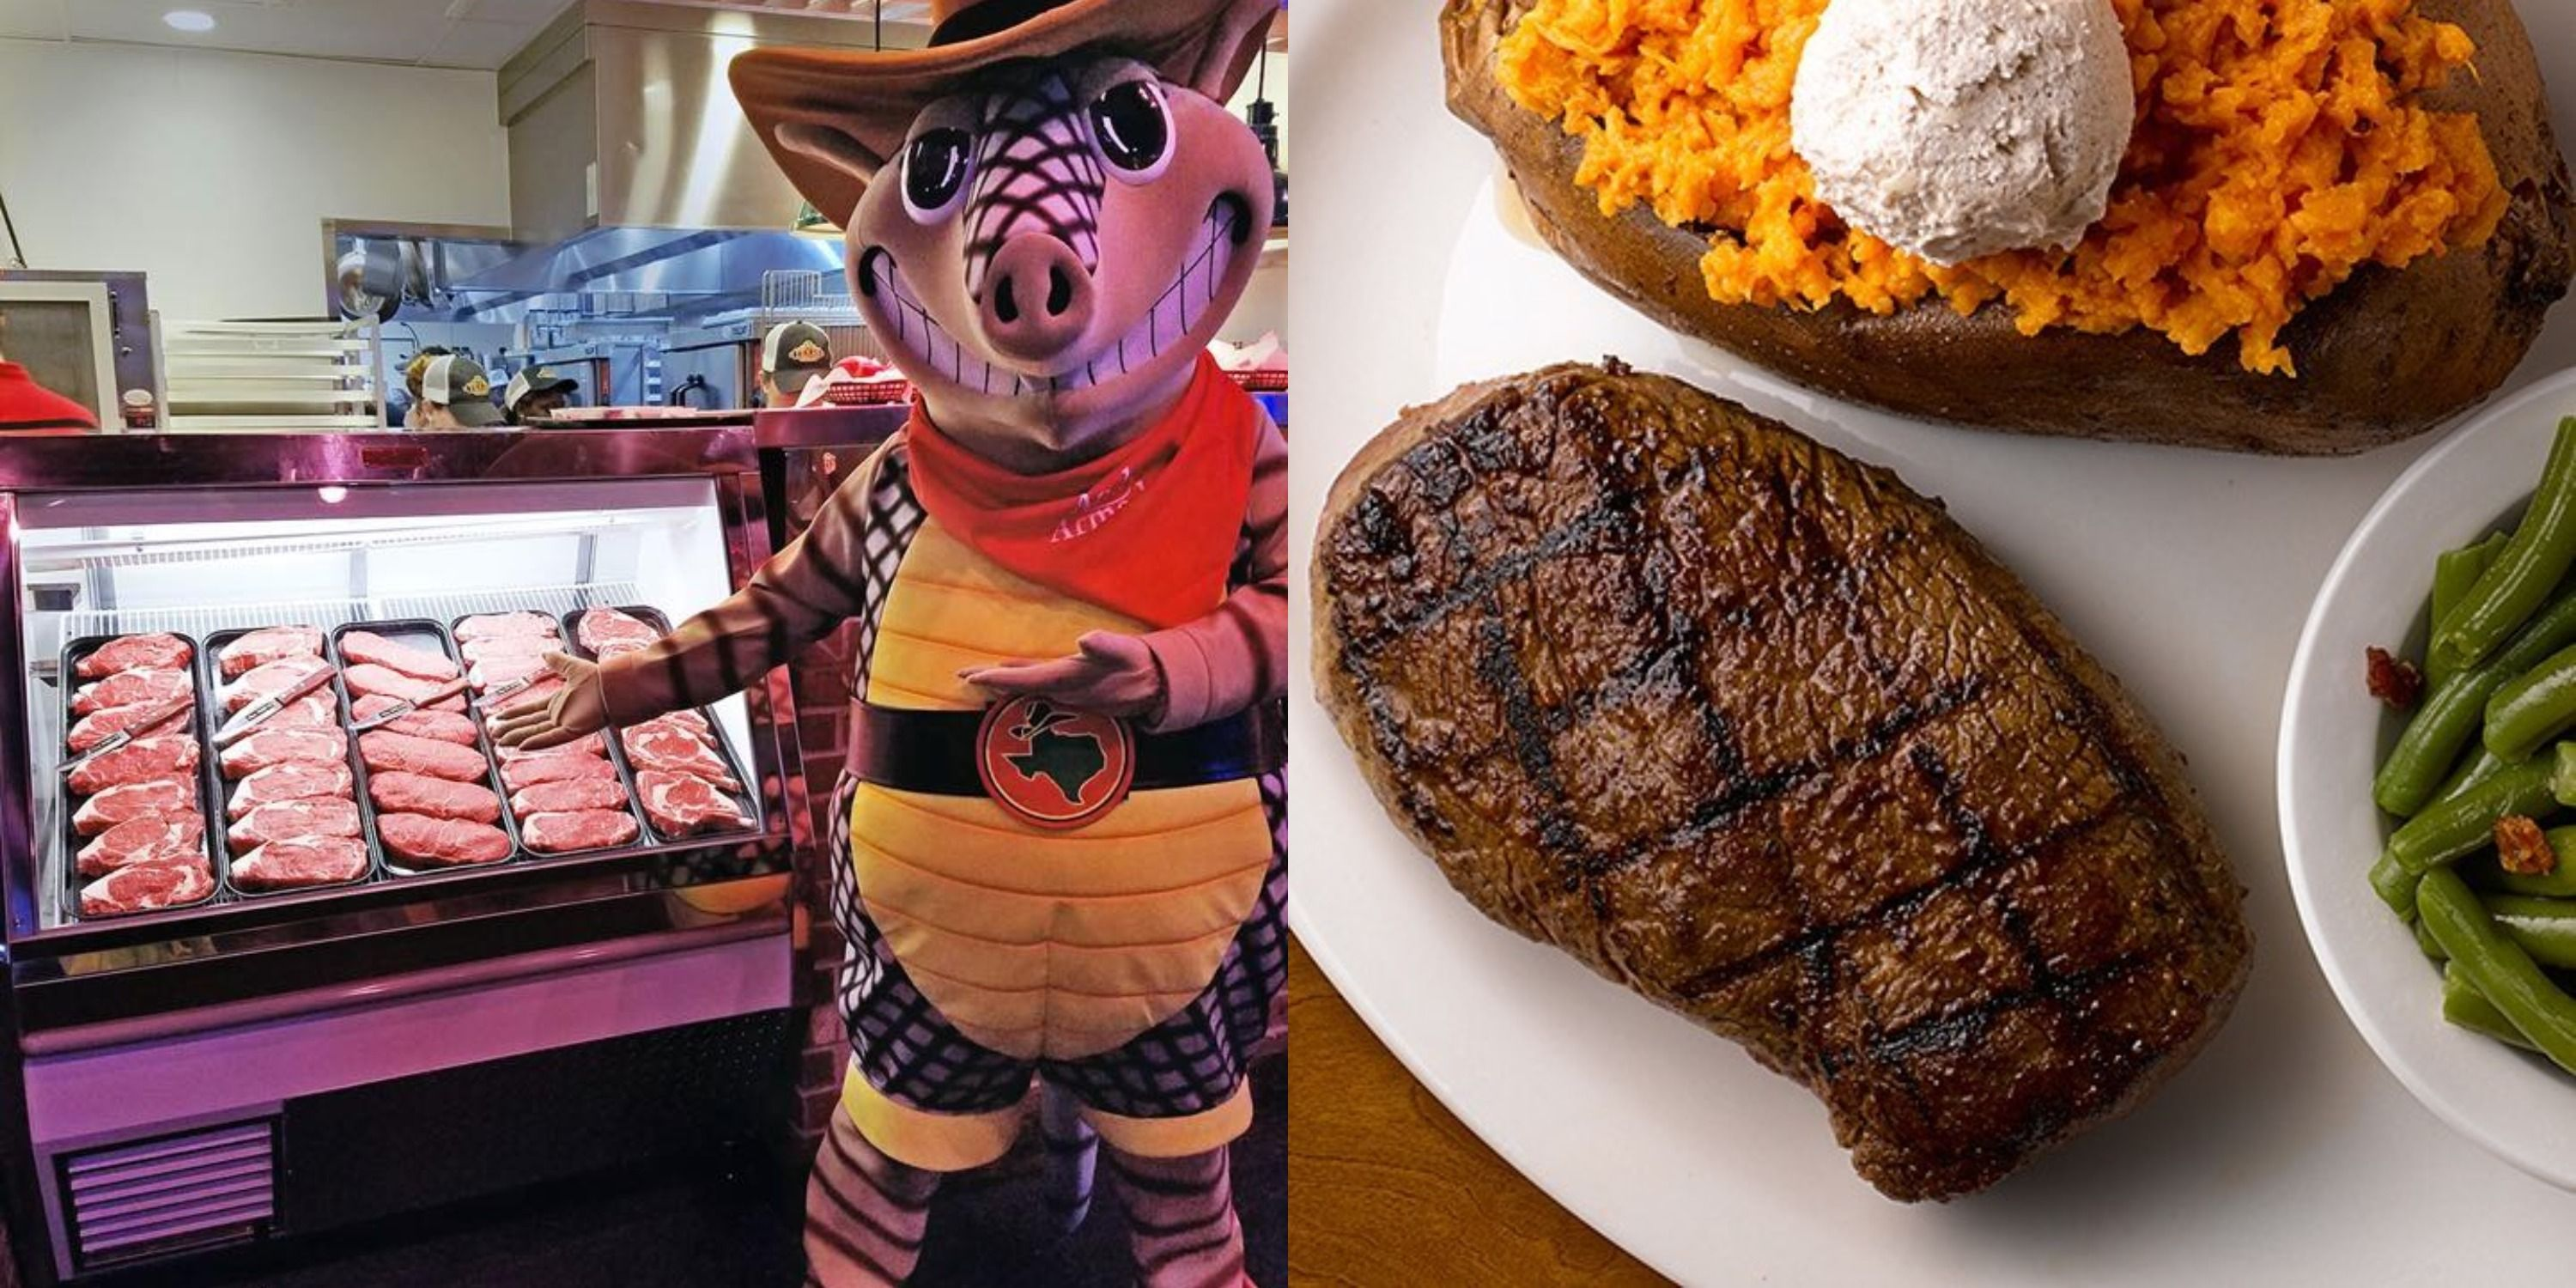 Texas Roadhouse Is Selling Ready-To-Cook Steaks